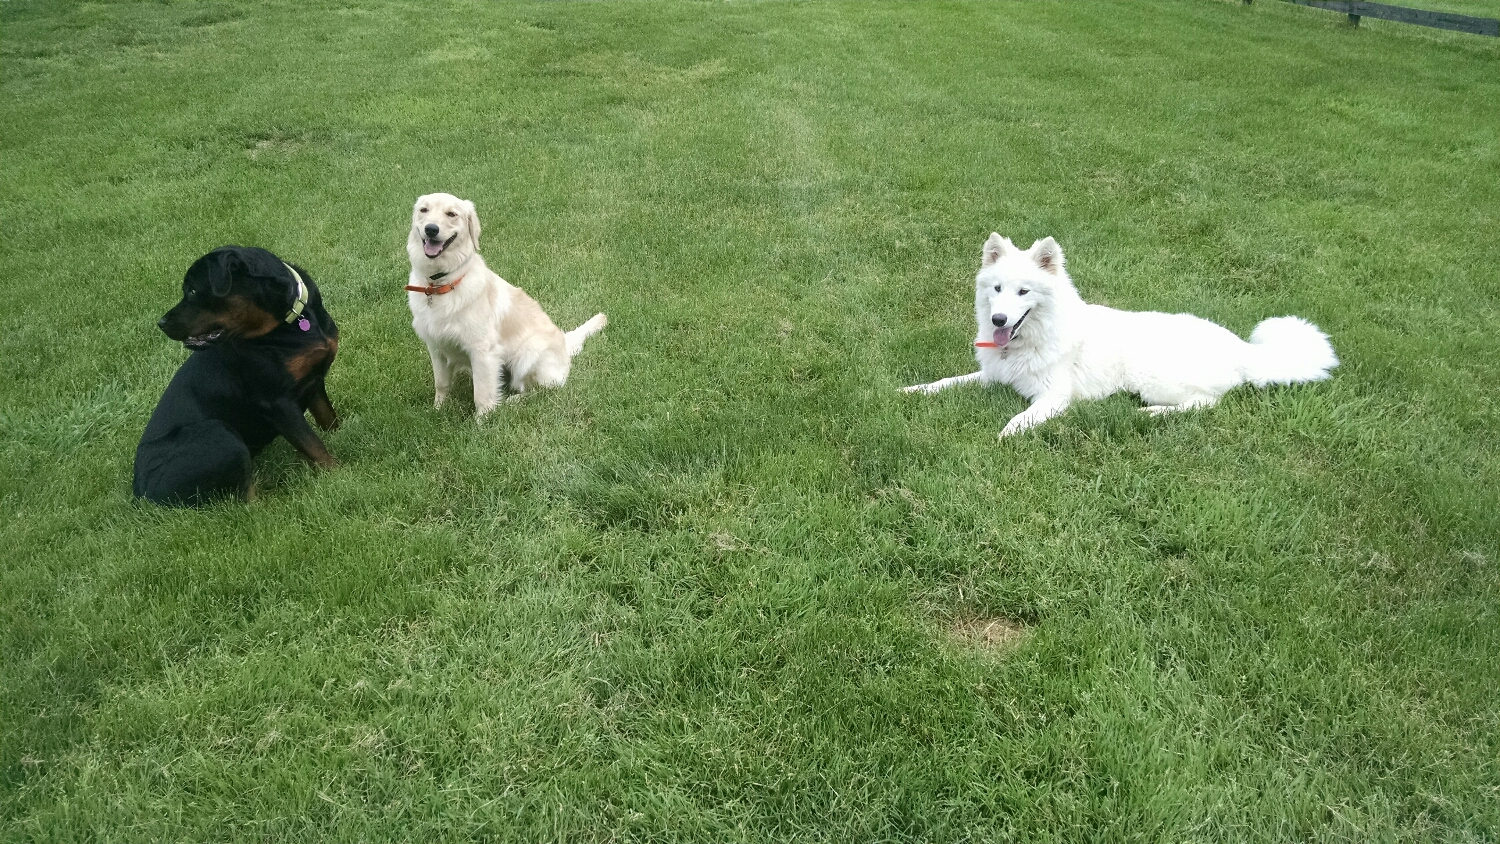 Start the day with a little play time with friends